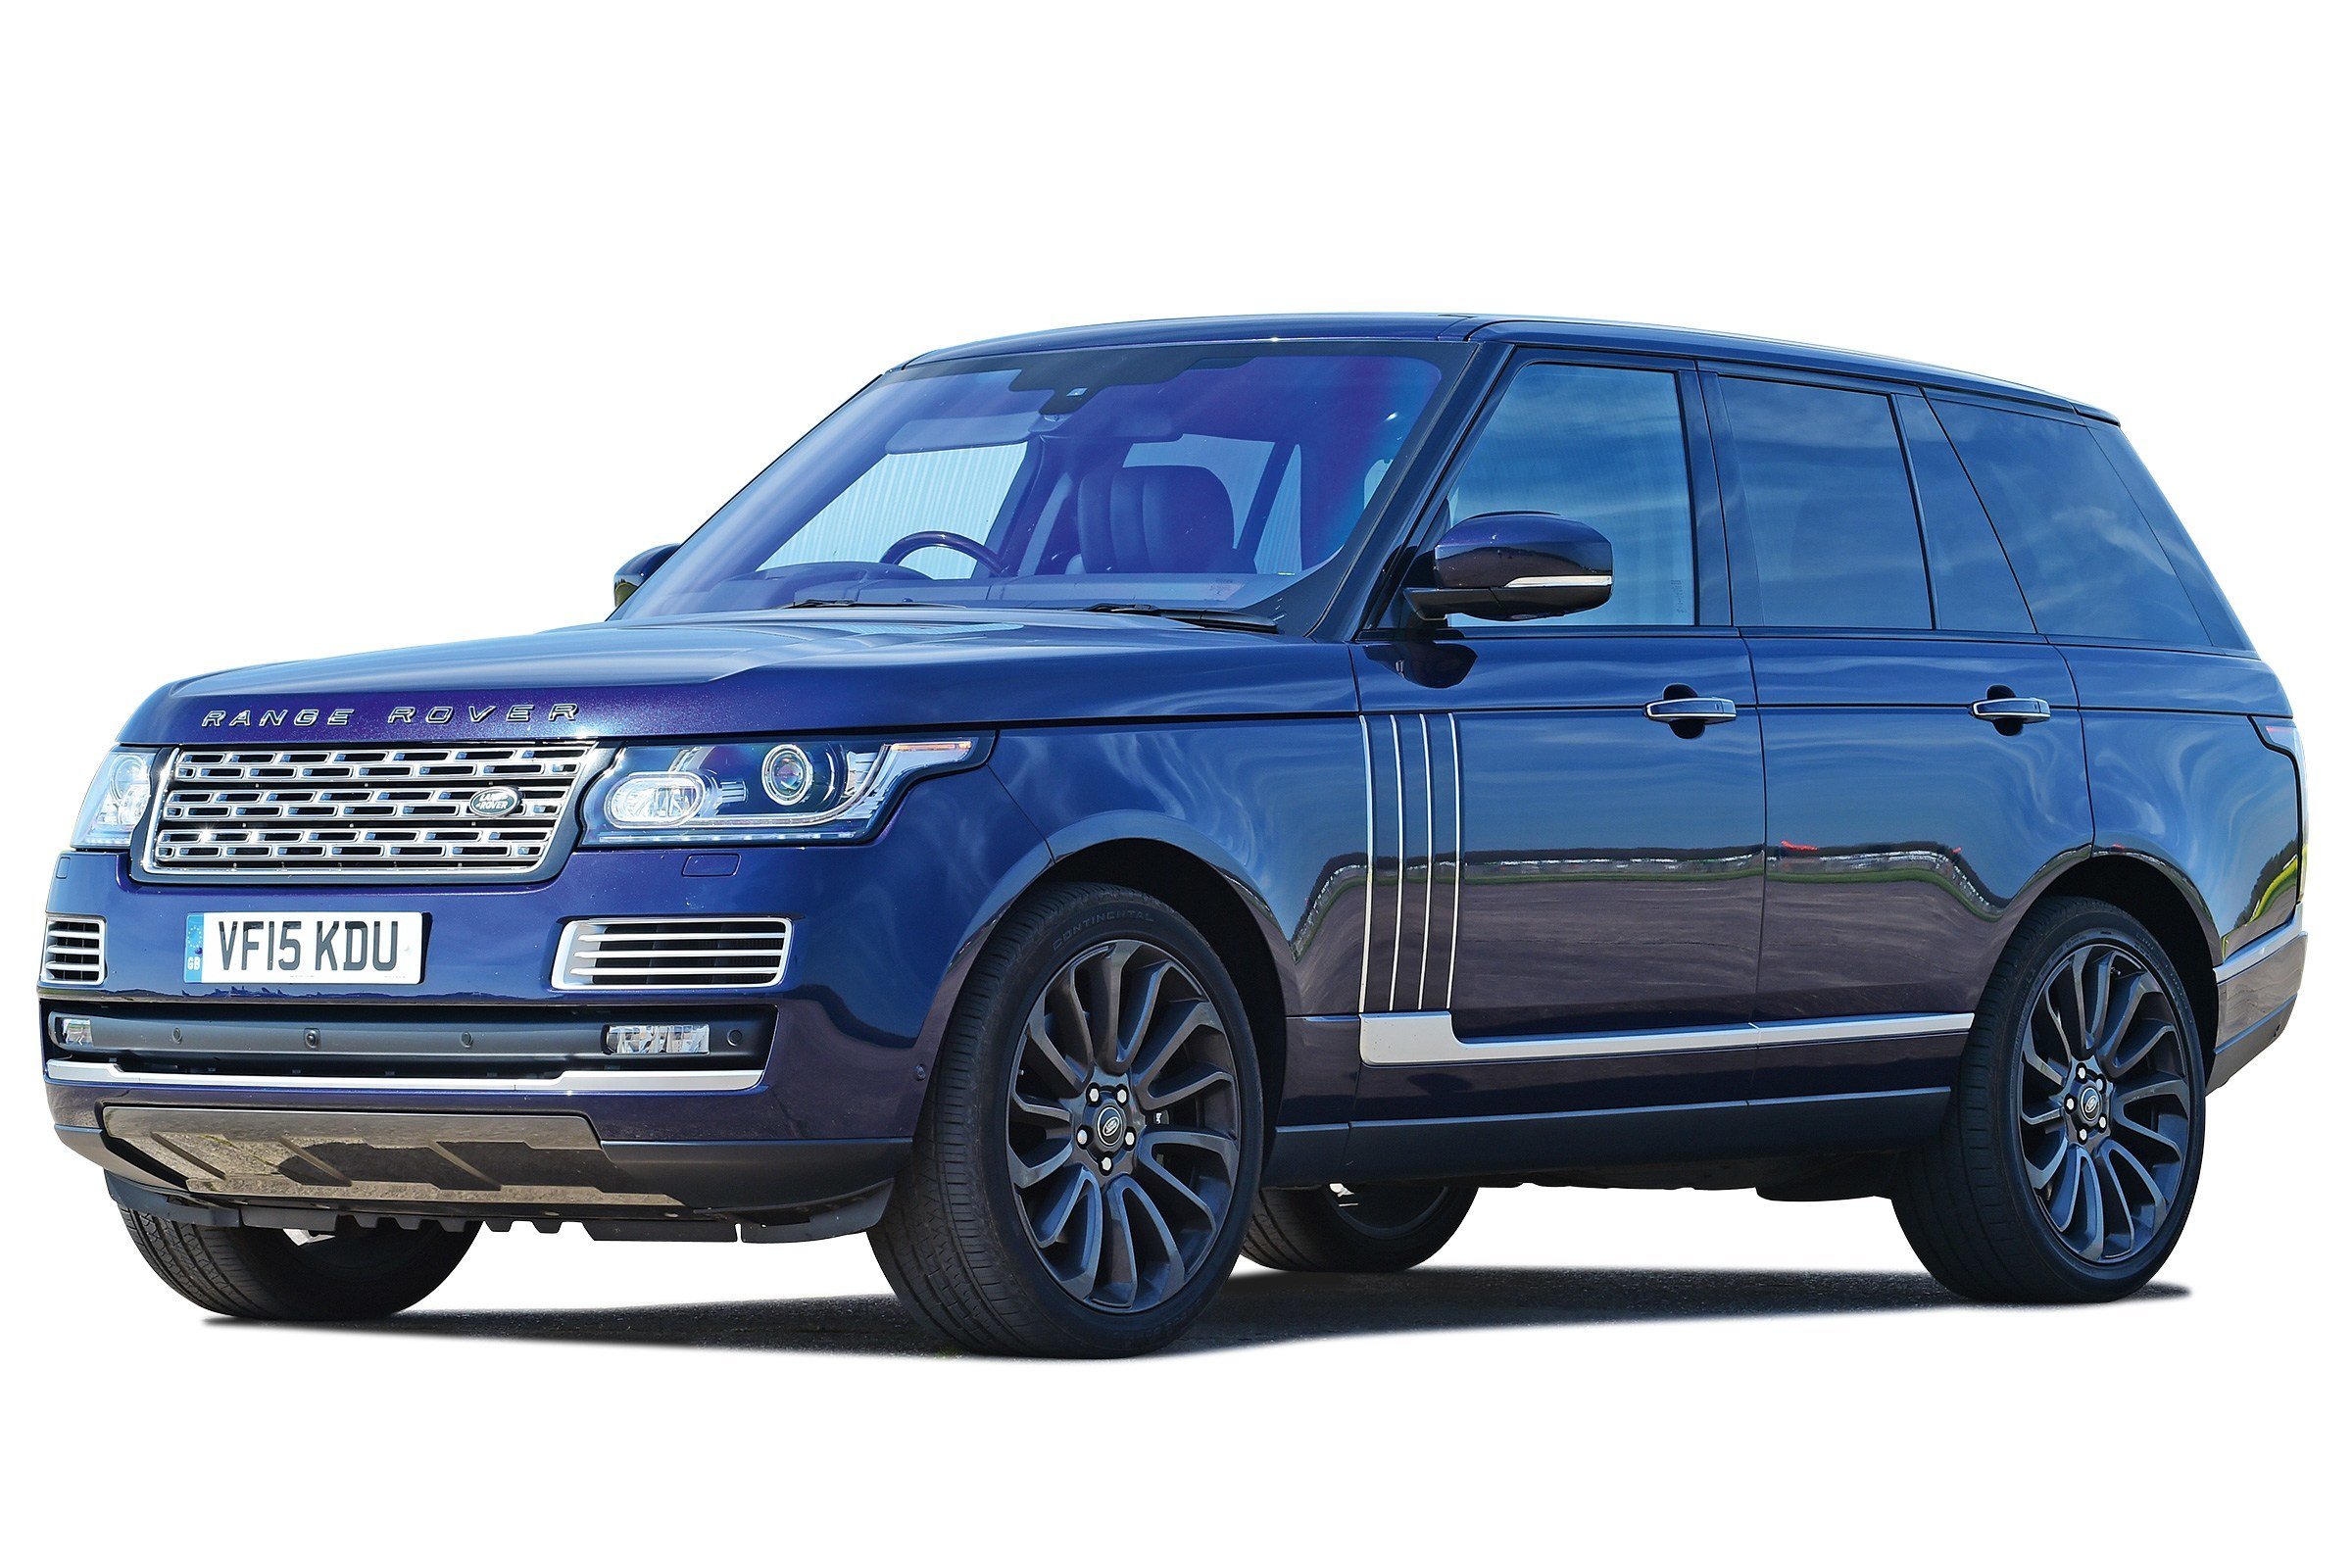 New Range Rover Suv Review Carbuyer On This Month